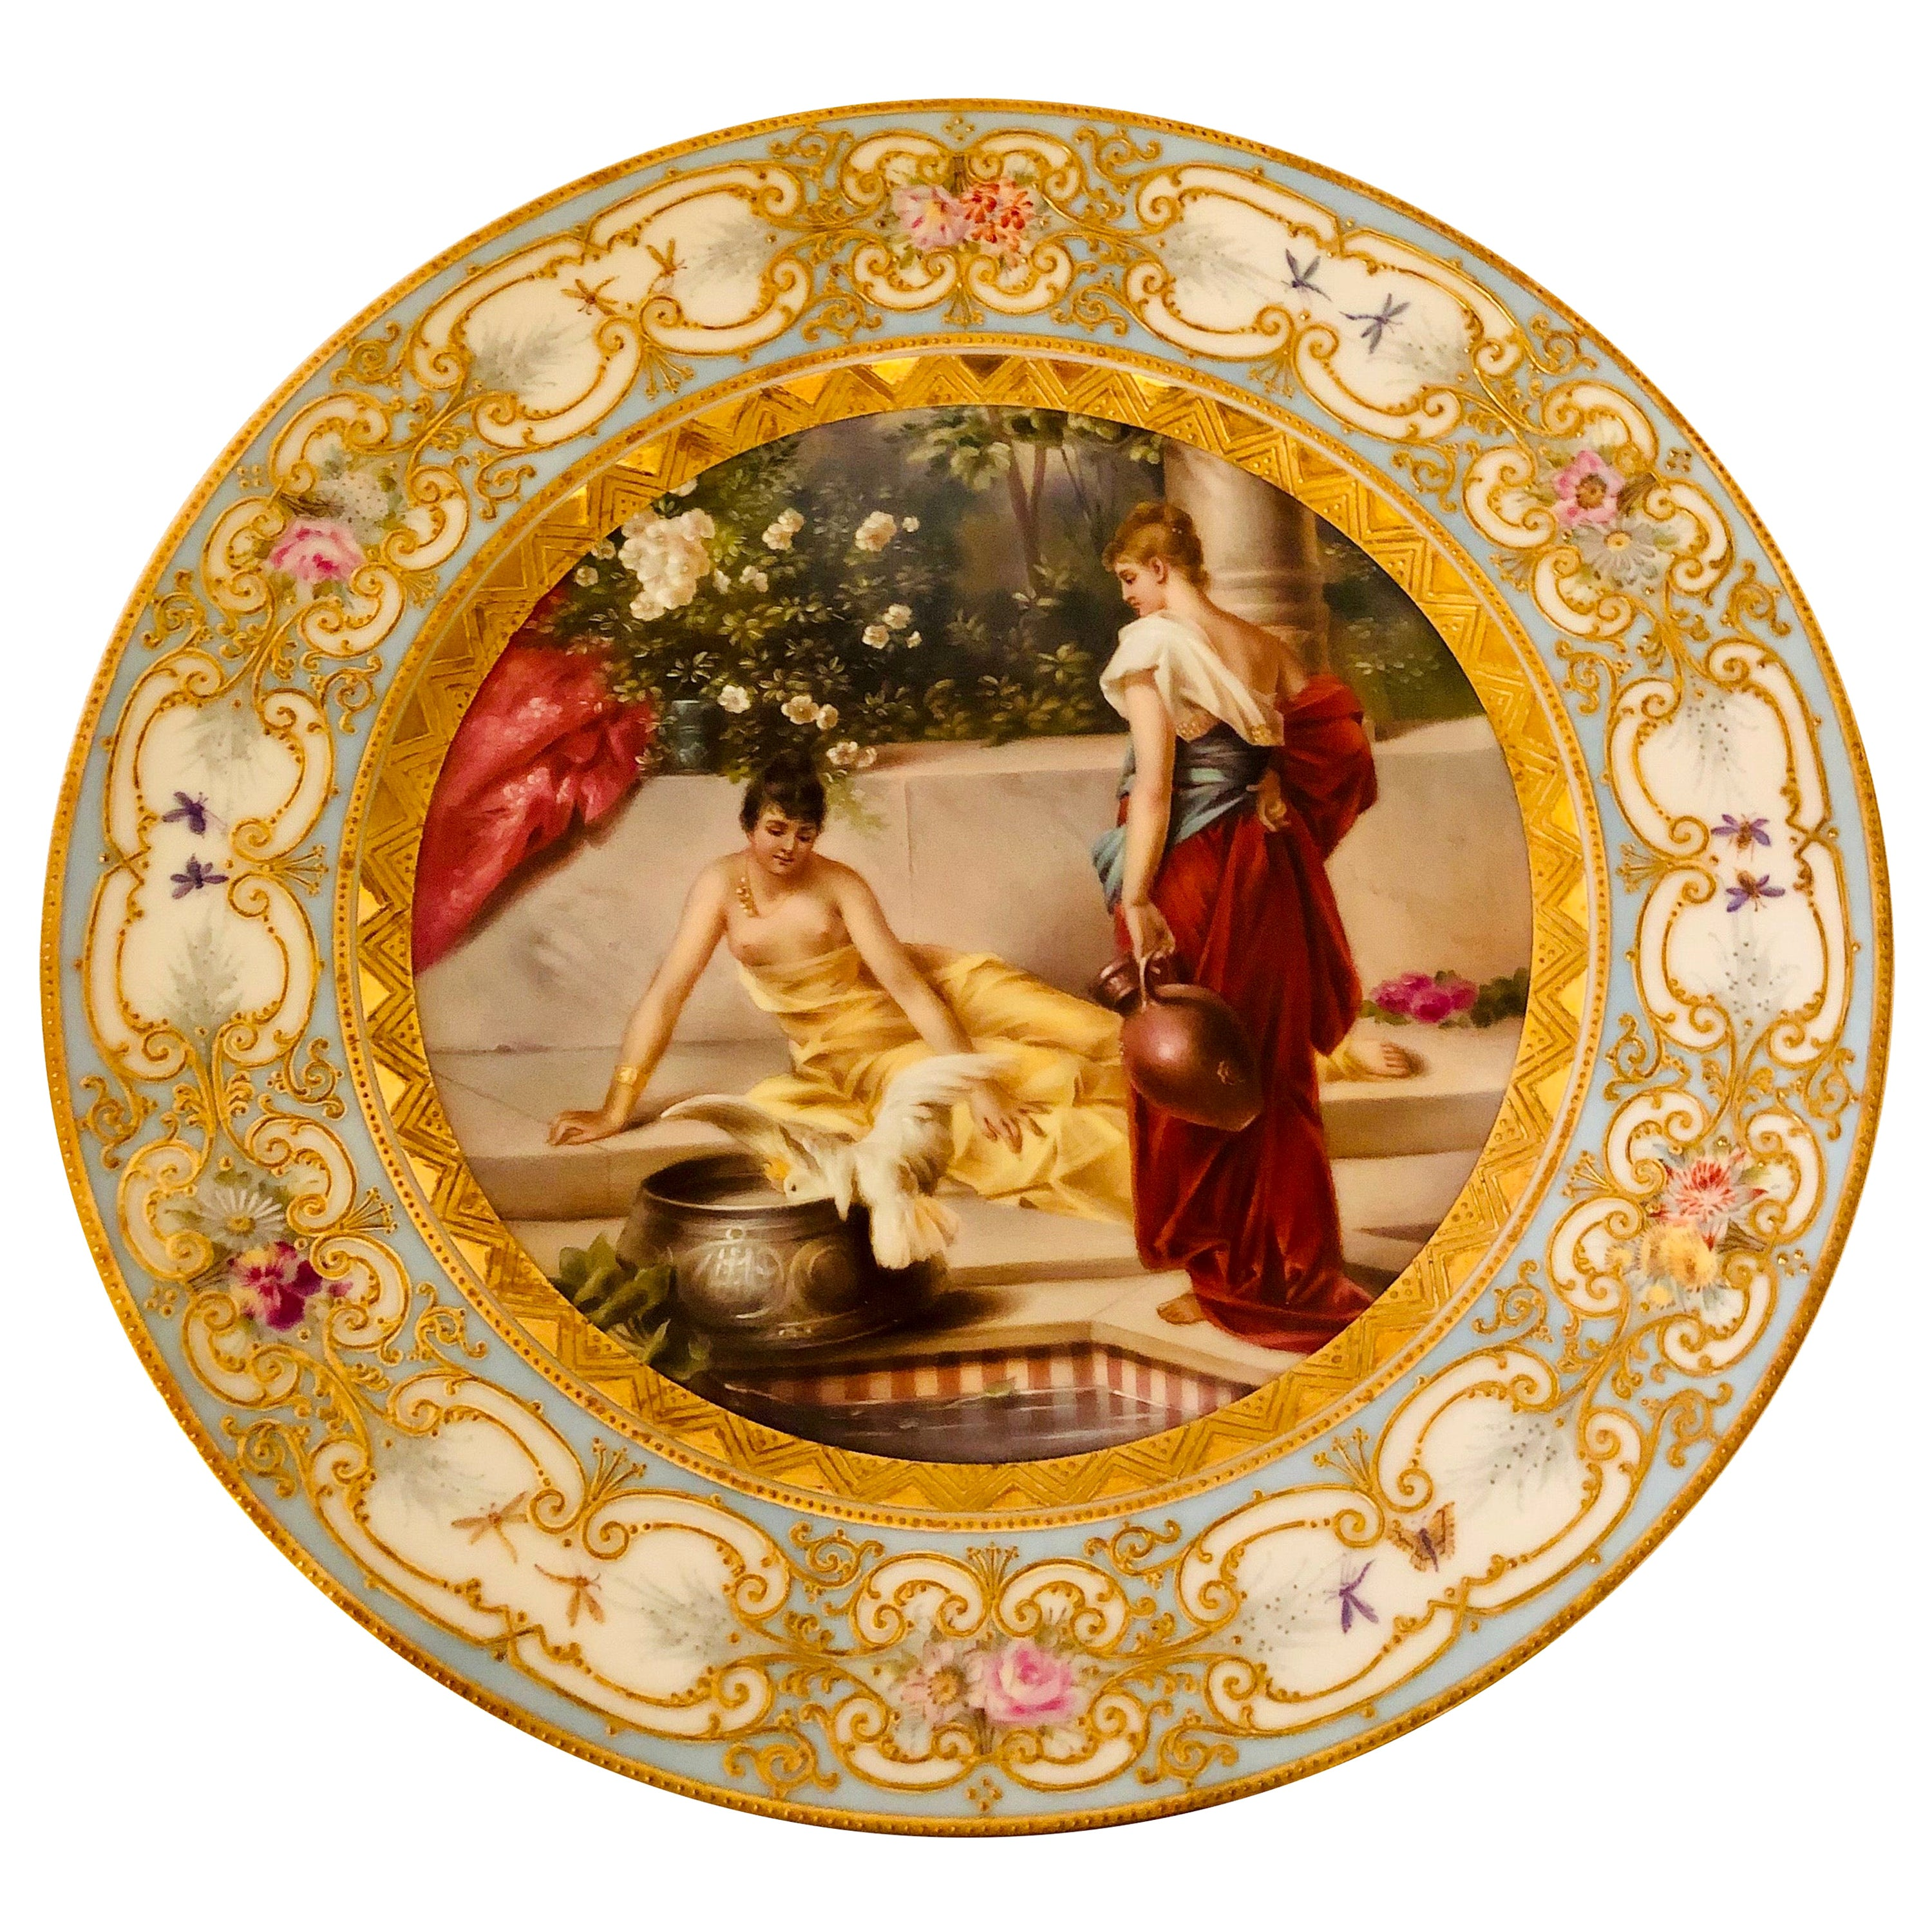 """""""Royal Vienna"""" Plate Painted with Two Ladies and a Bird at a Tiled Watering Hole"""